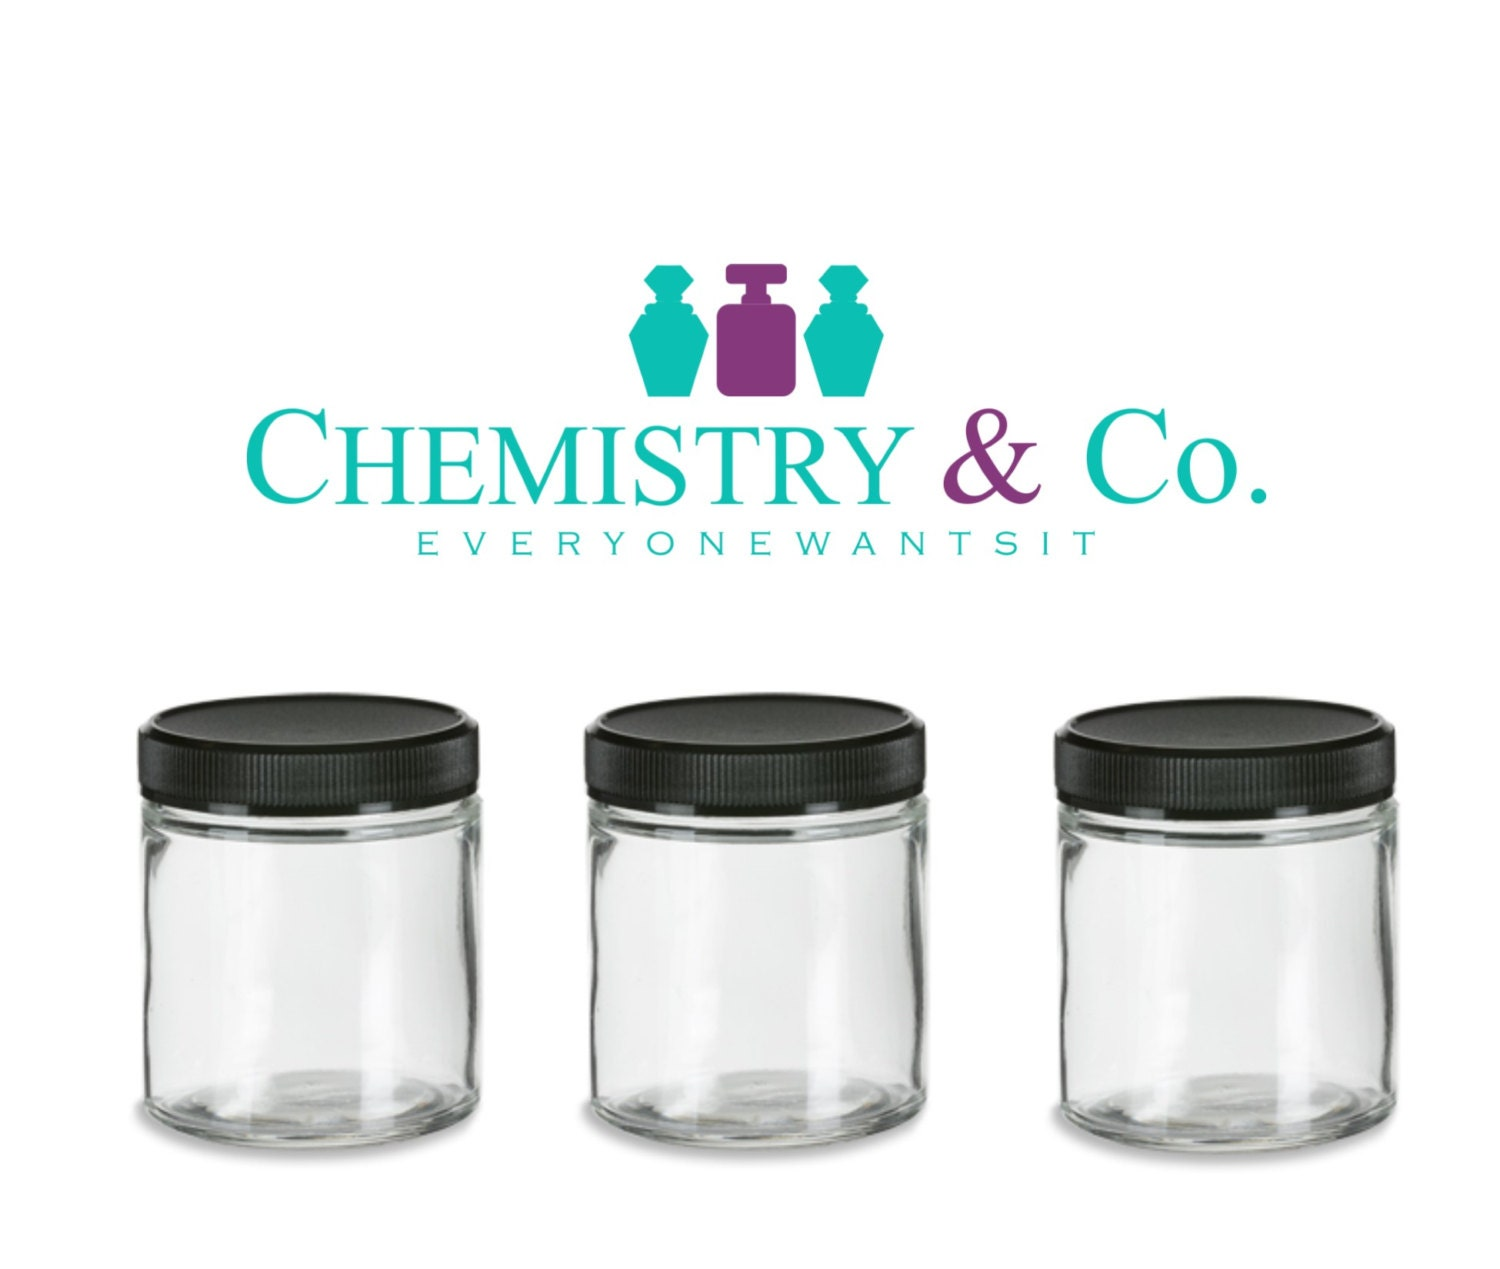 6 clear glass jars 4 oz 120 ml w black caps for by chemistryco. Black Bedroom Furniture Sets. Home Design Ideas